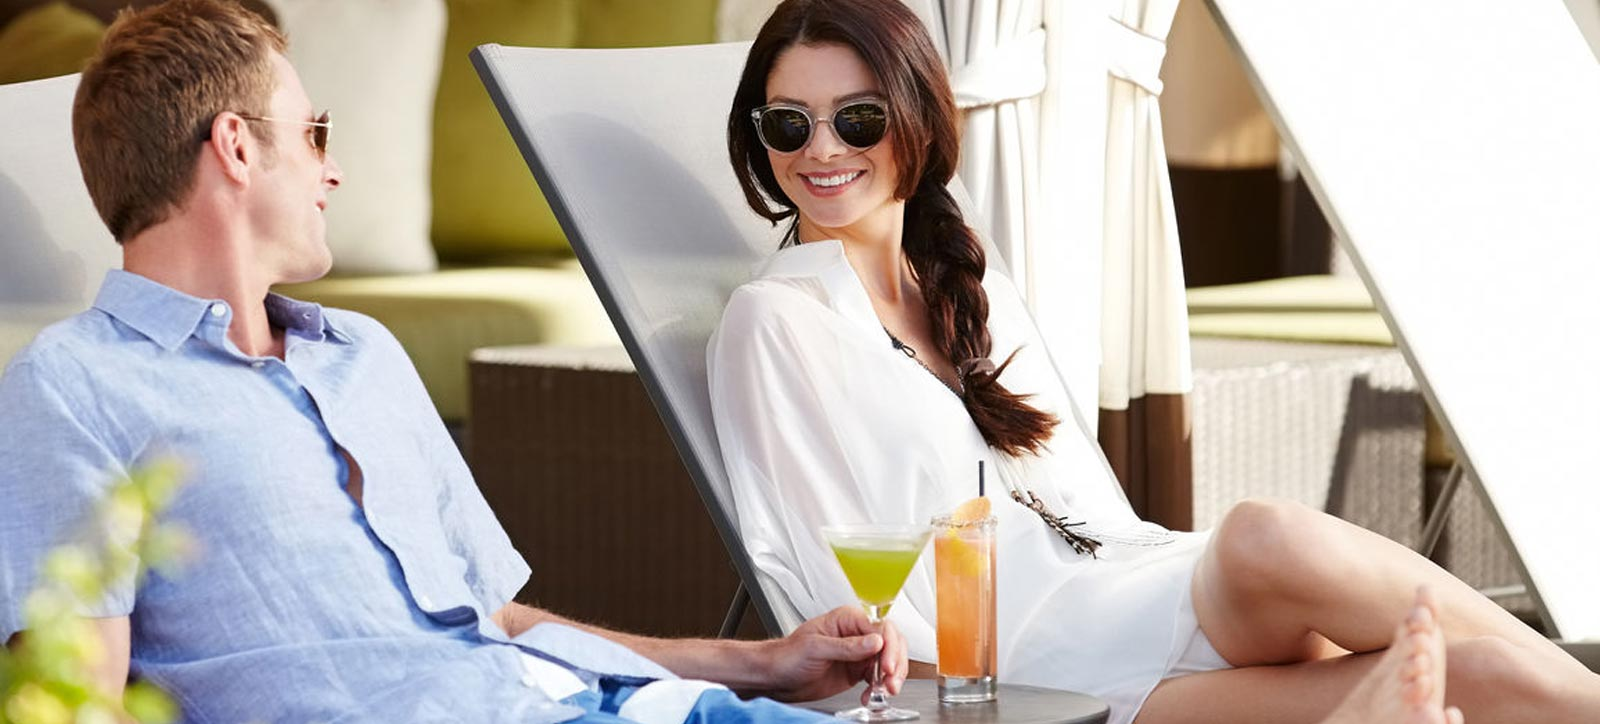 Happy young couple with drinks looking at each other while relaxing on lounge chairs